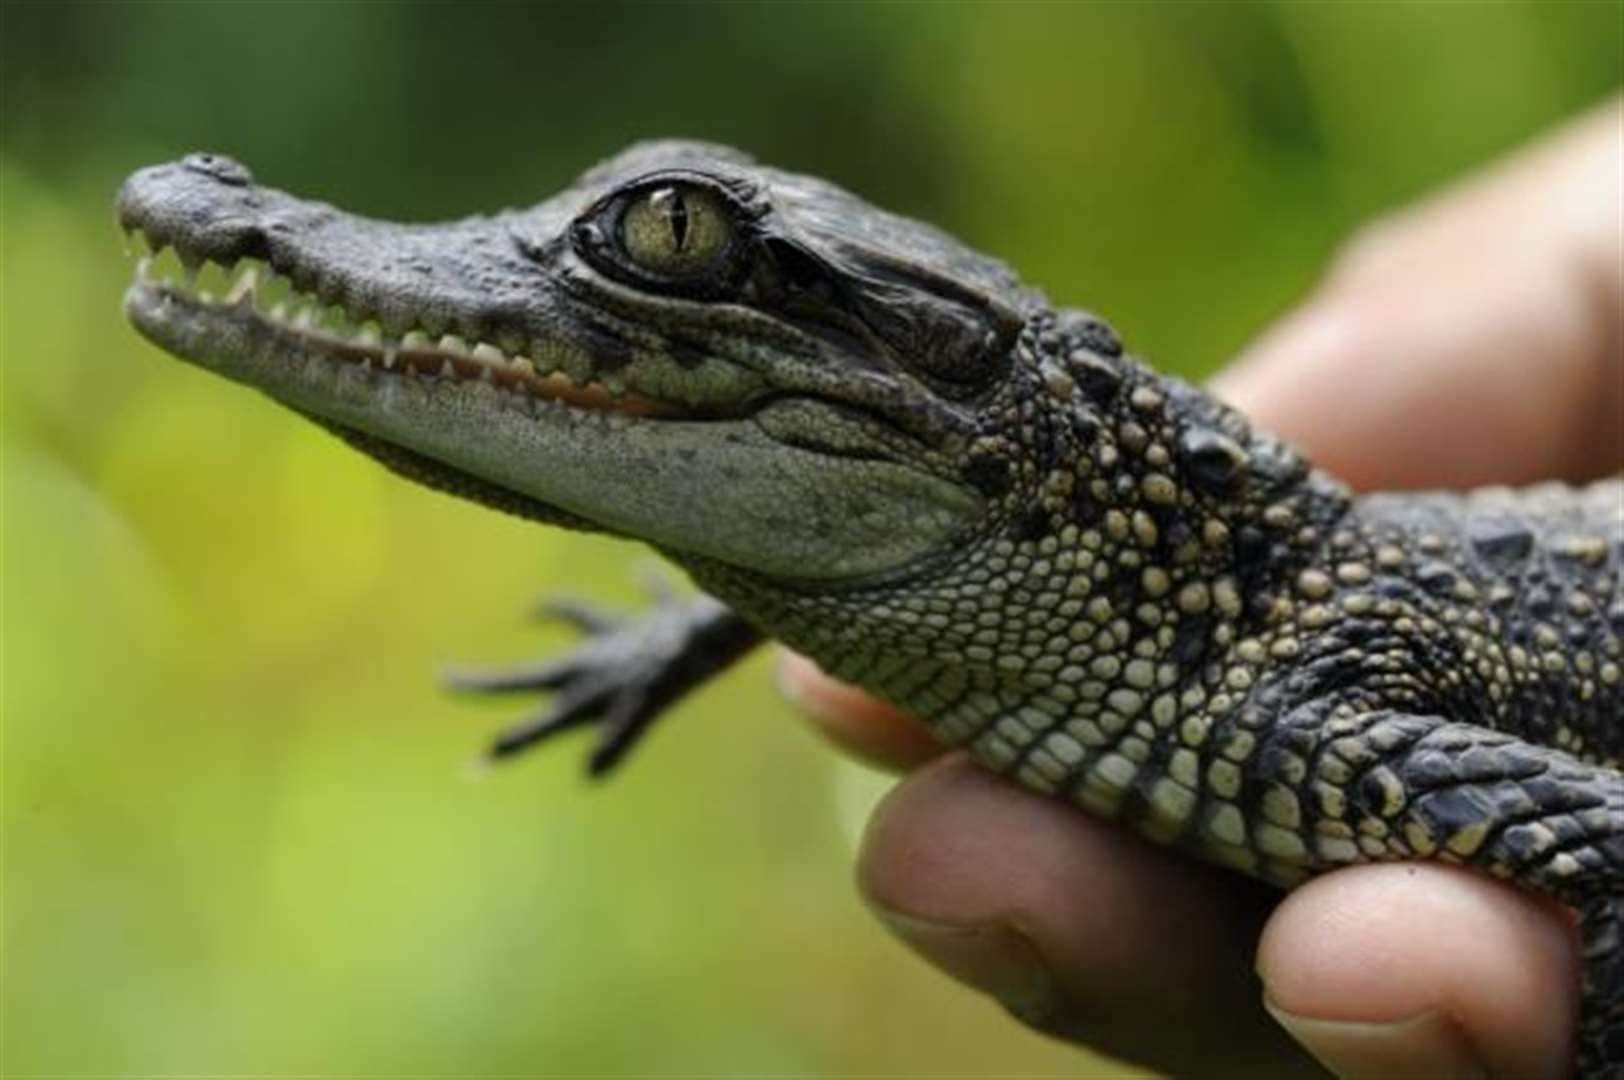 Success for Cambridge conservation charity battling to save one of world's rarest reptiles